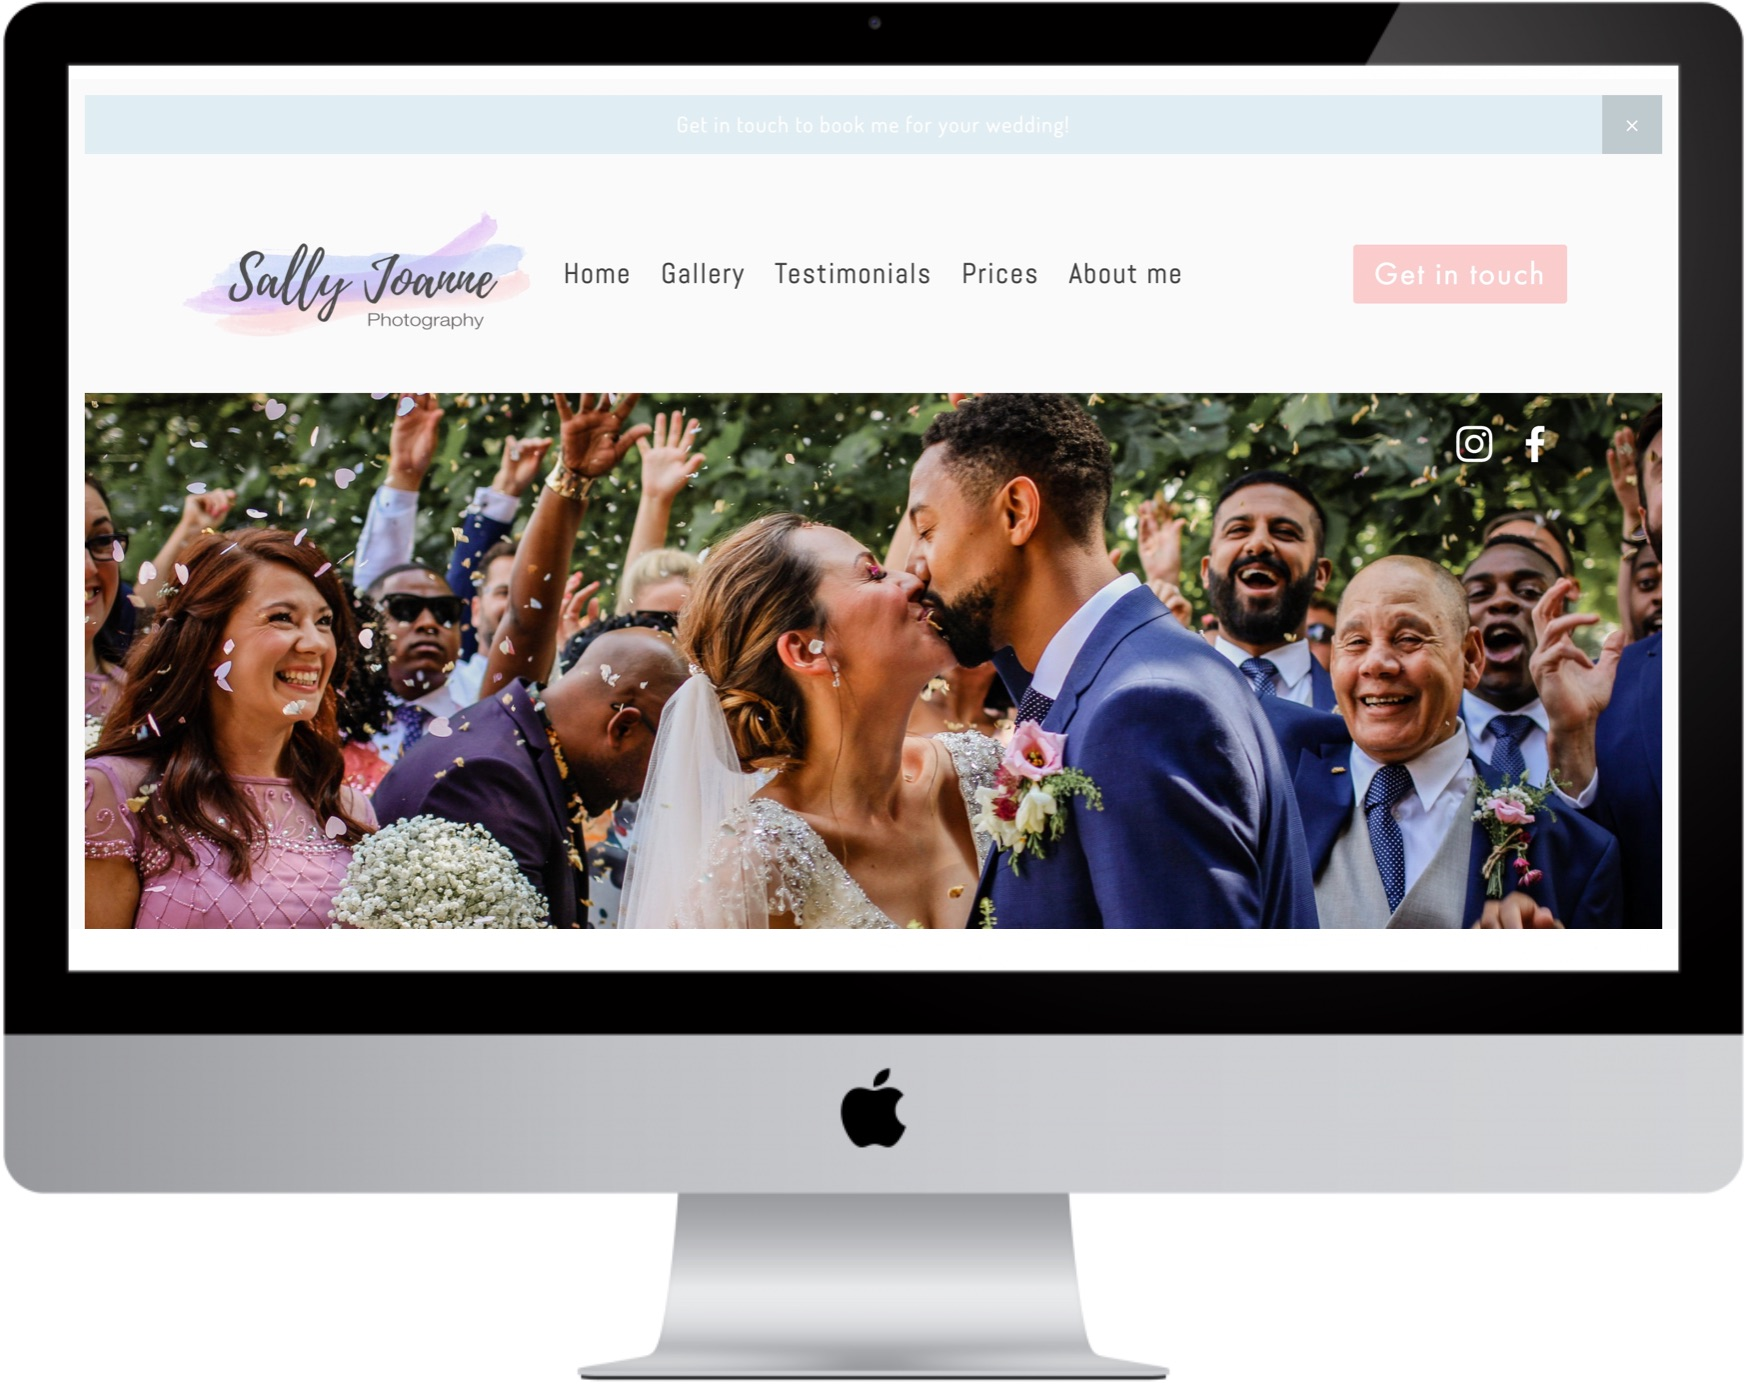 Sally Joanne website.jpg